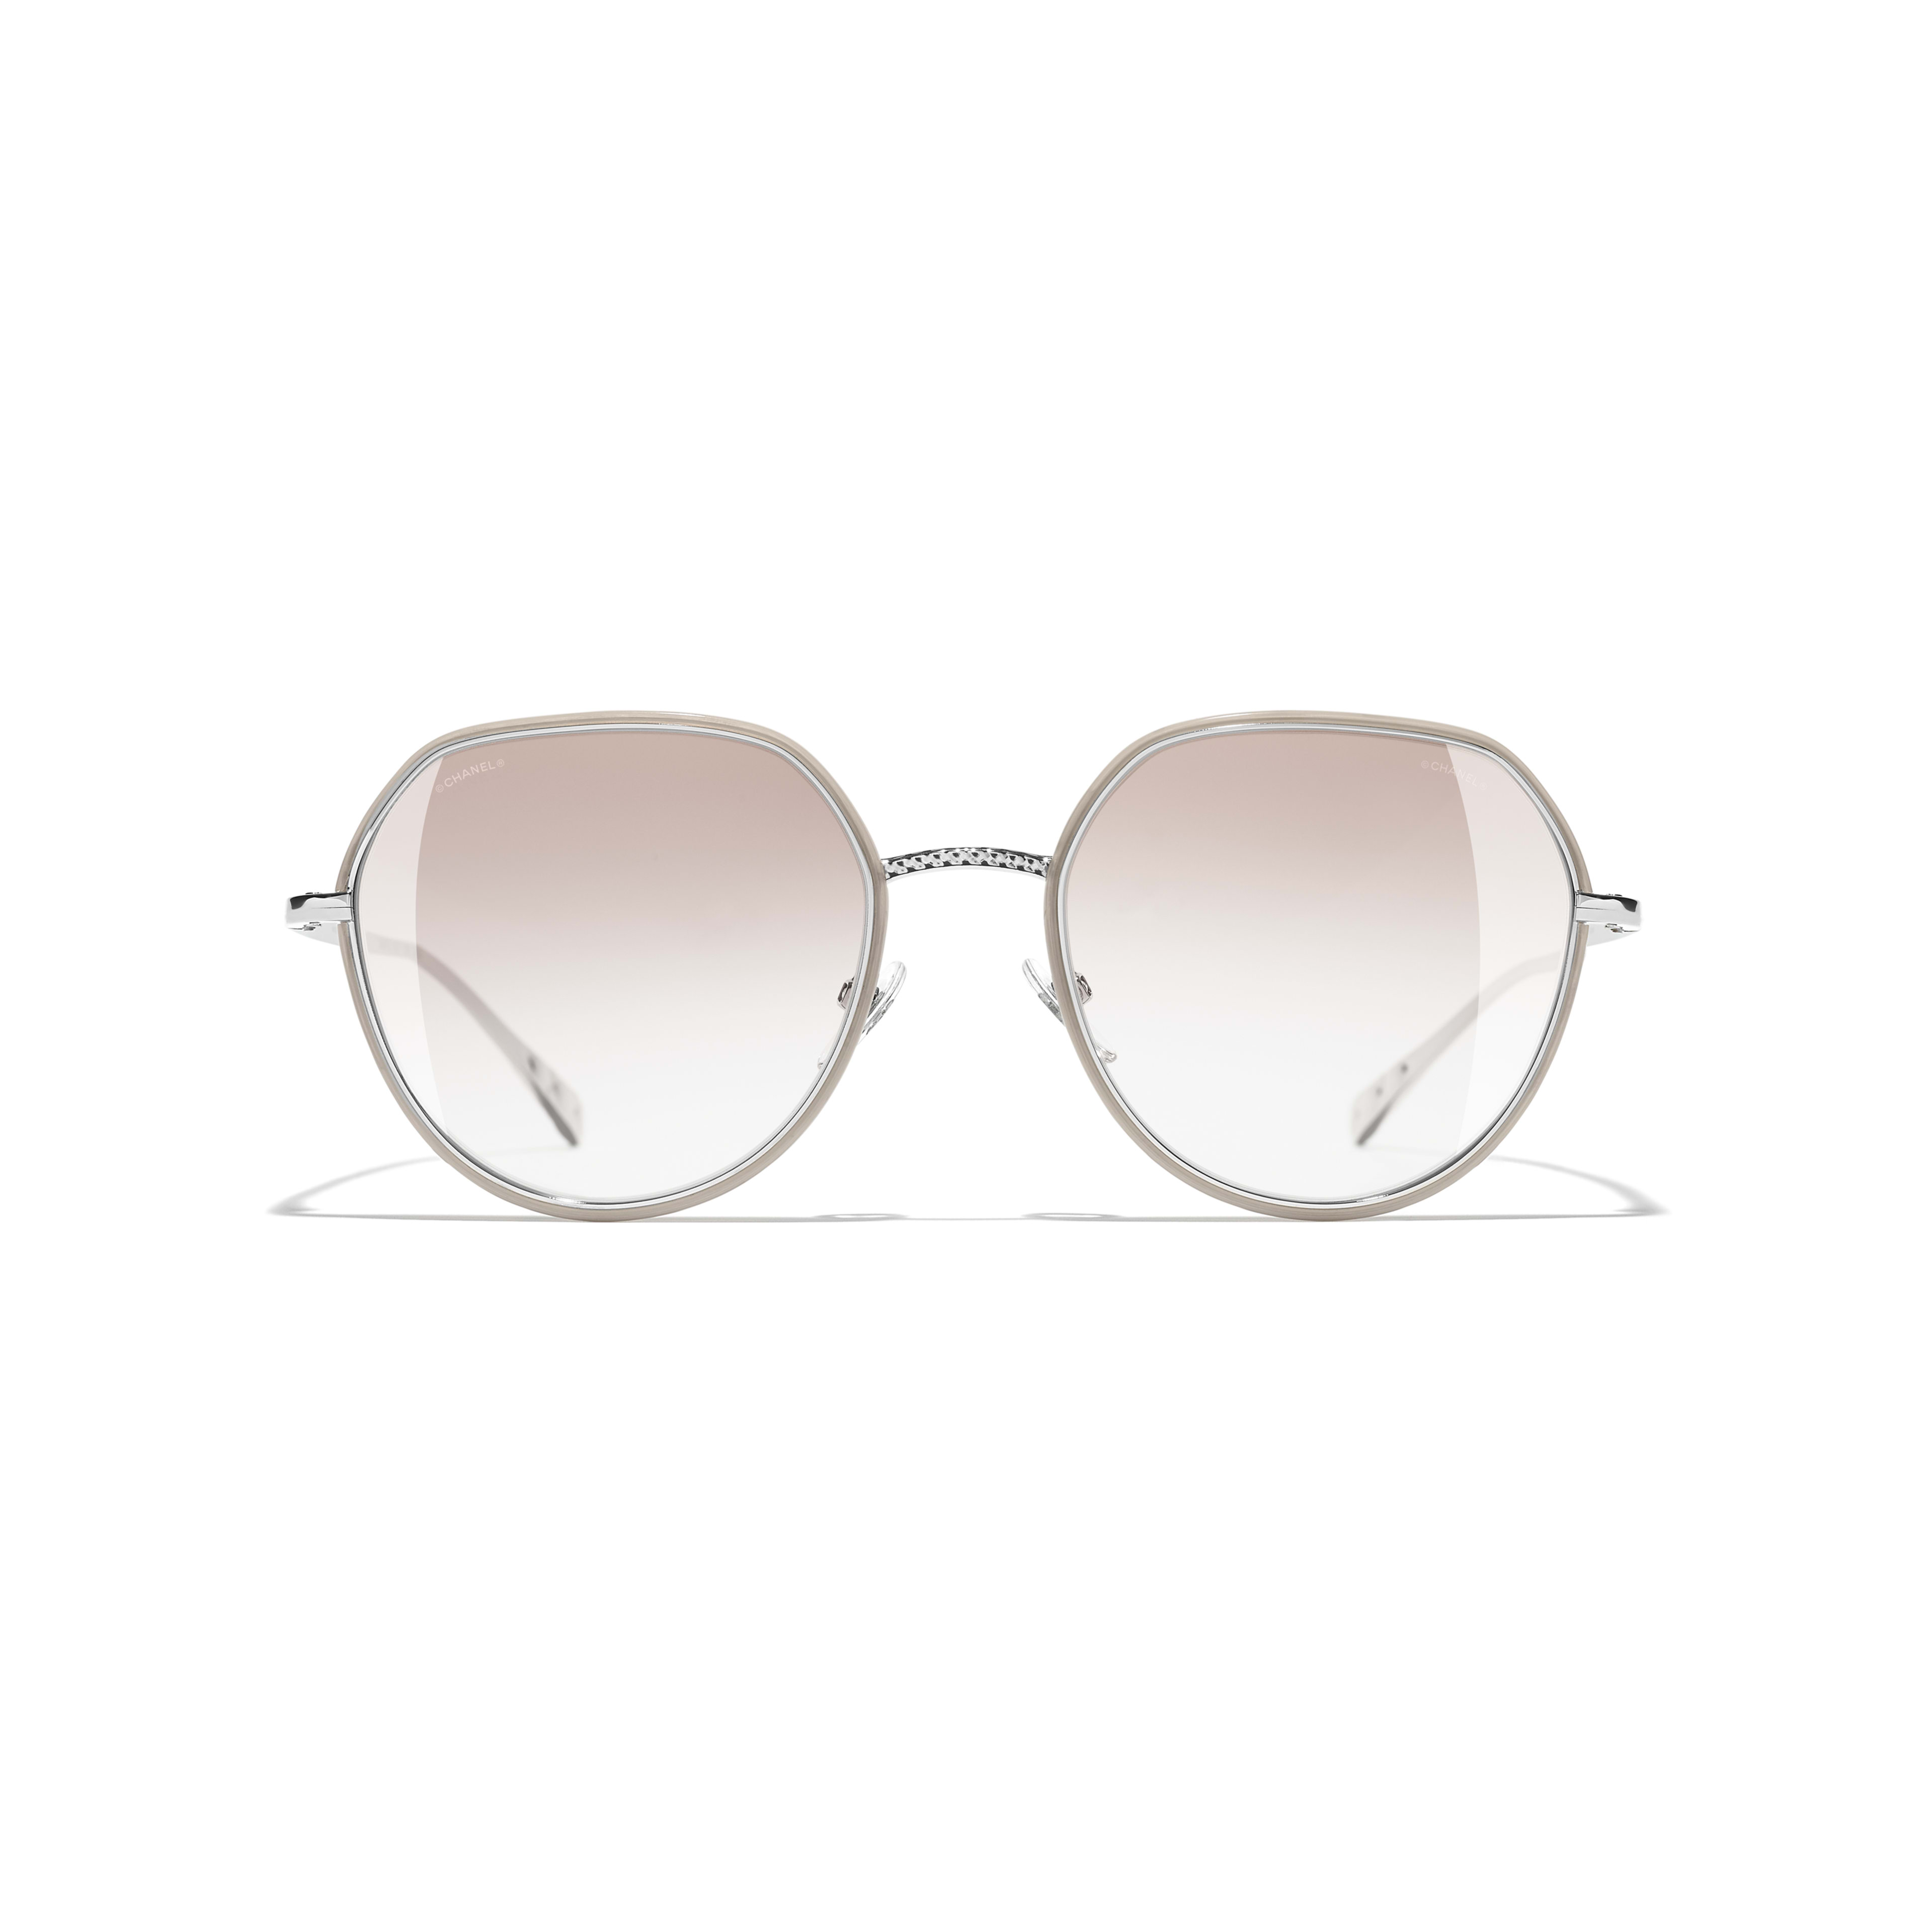 Round Sunglasses - Silver & Beige - Metal - Alternative view - see full sized version